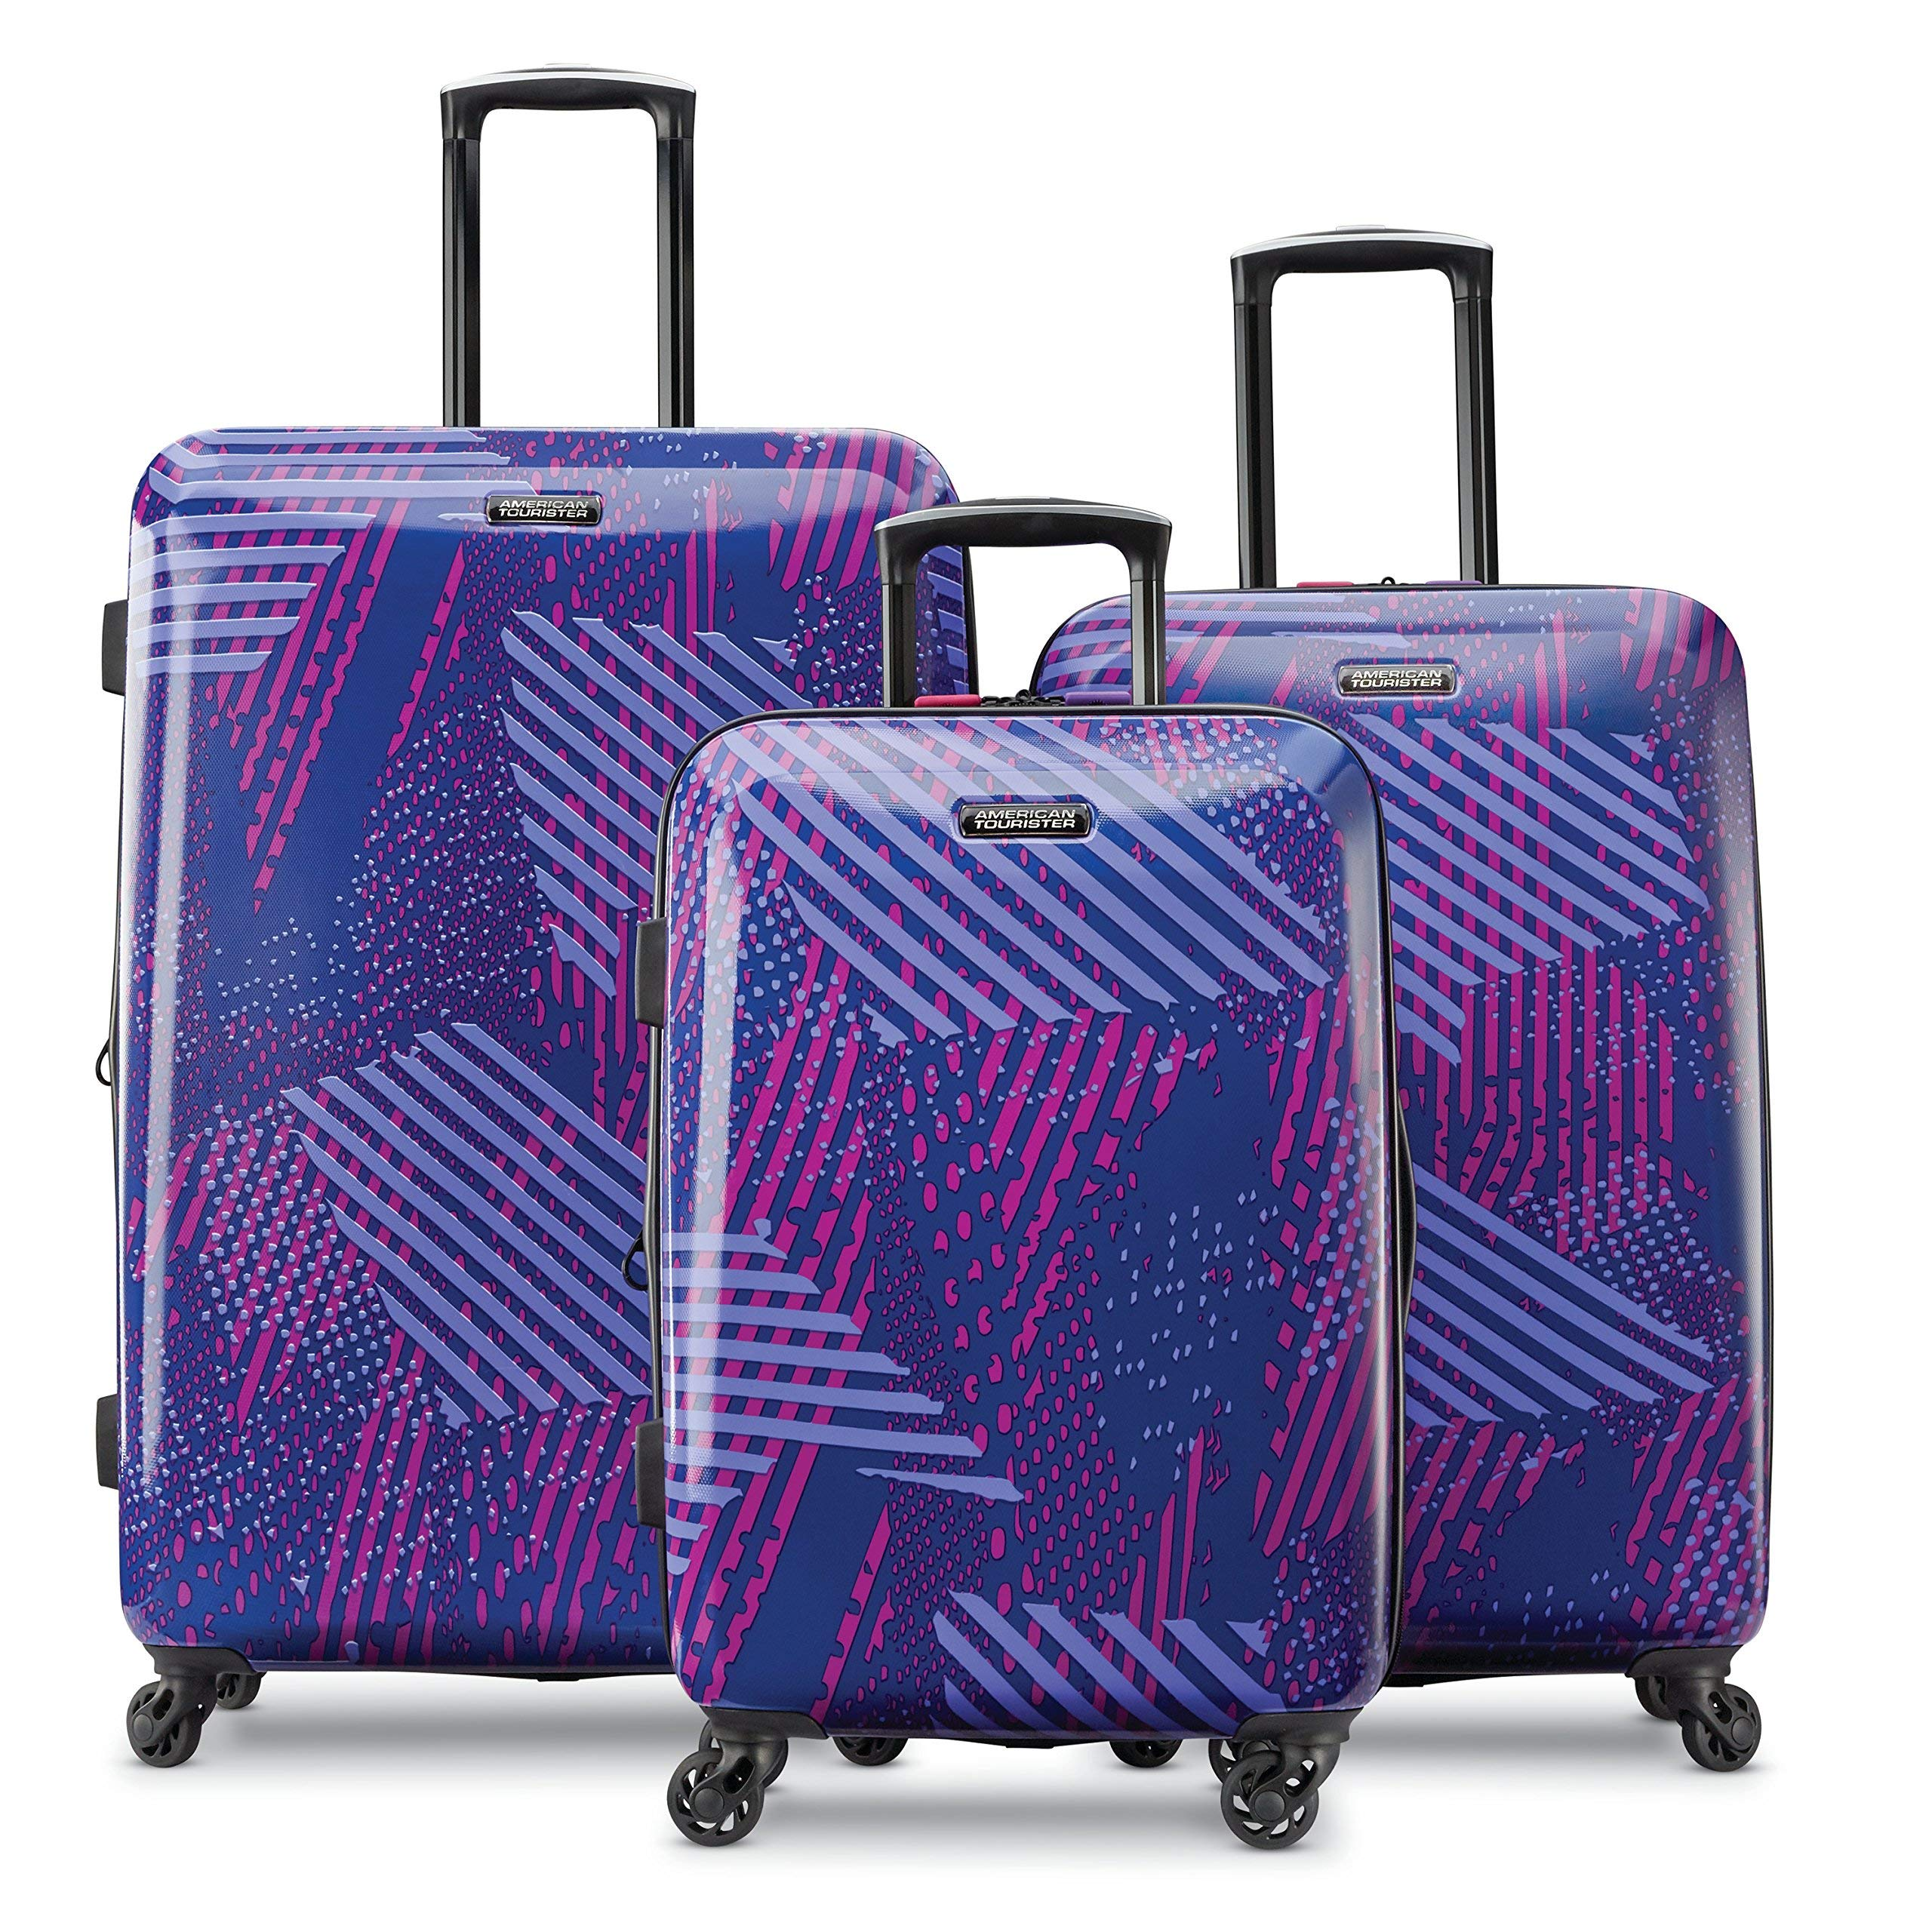 American Tourister 3-Piece Set, Purple Storm by American Tourister